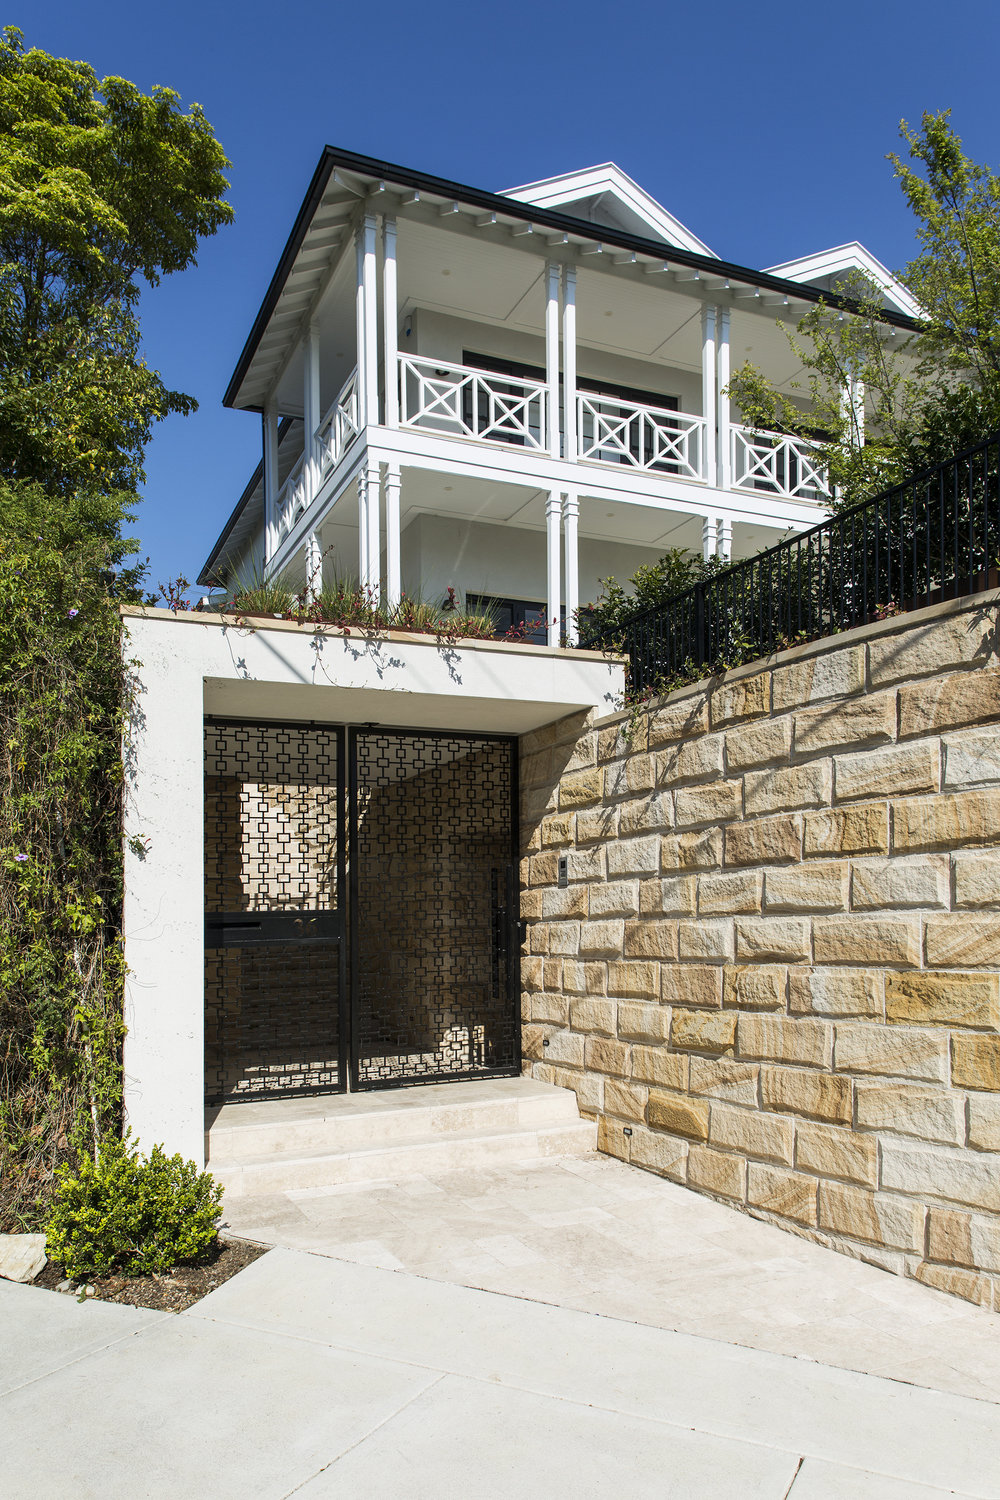 Wentworth Vaucluse Entry 2.jpg